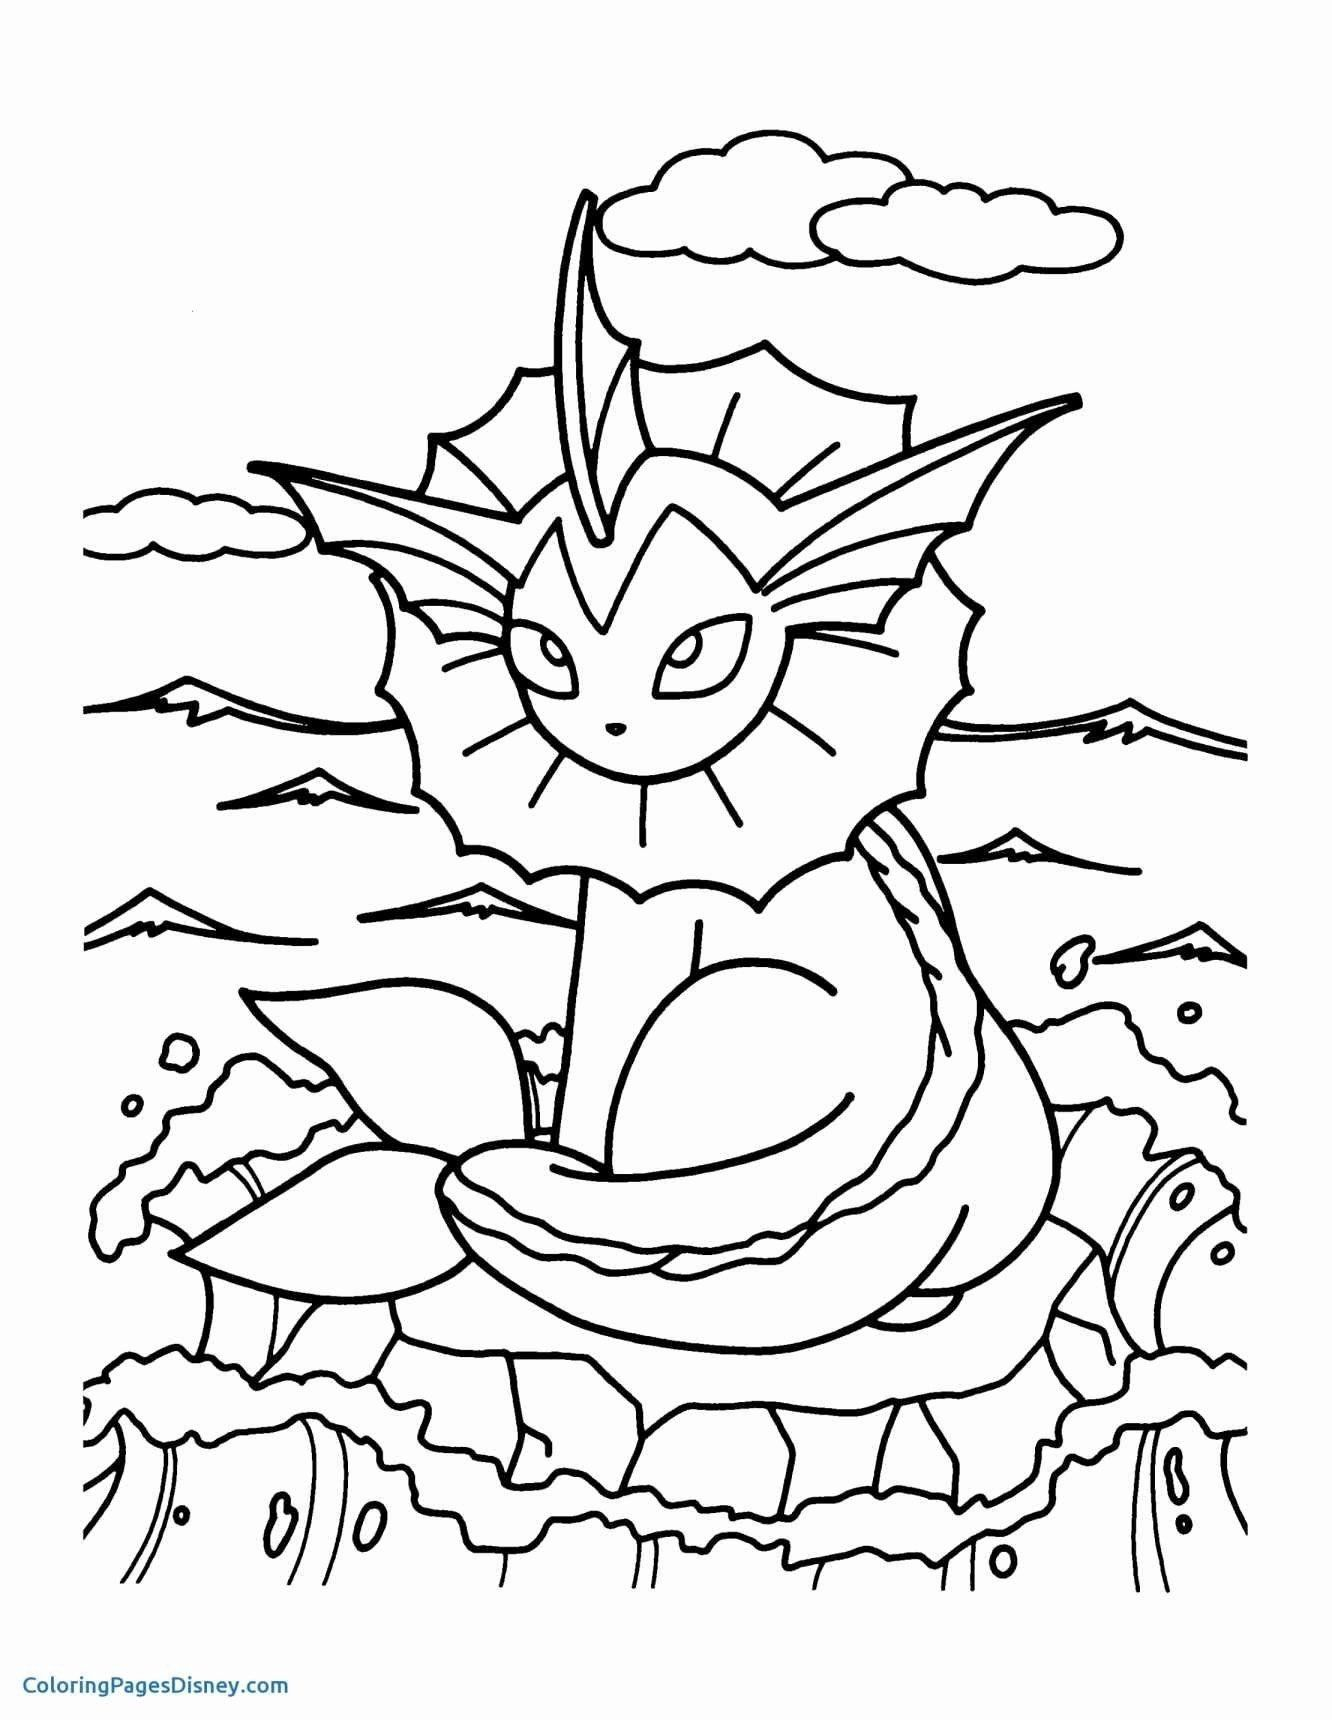 Disney Coloring Pages Pdf Inspirational Coloring Books 38 Barbie Coloring Pages Pdf Ideas Bear Coloring Pages Superhero Coloring Pages Animal Coloring Pages